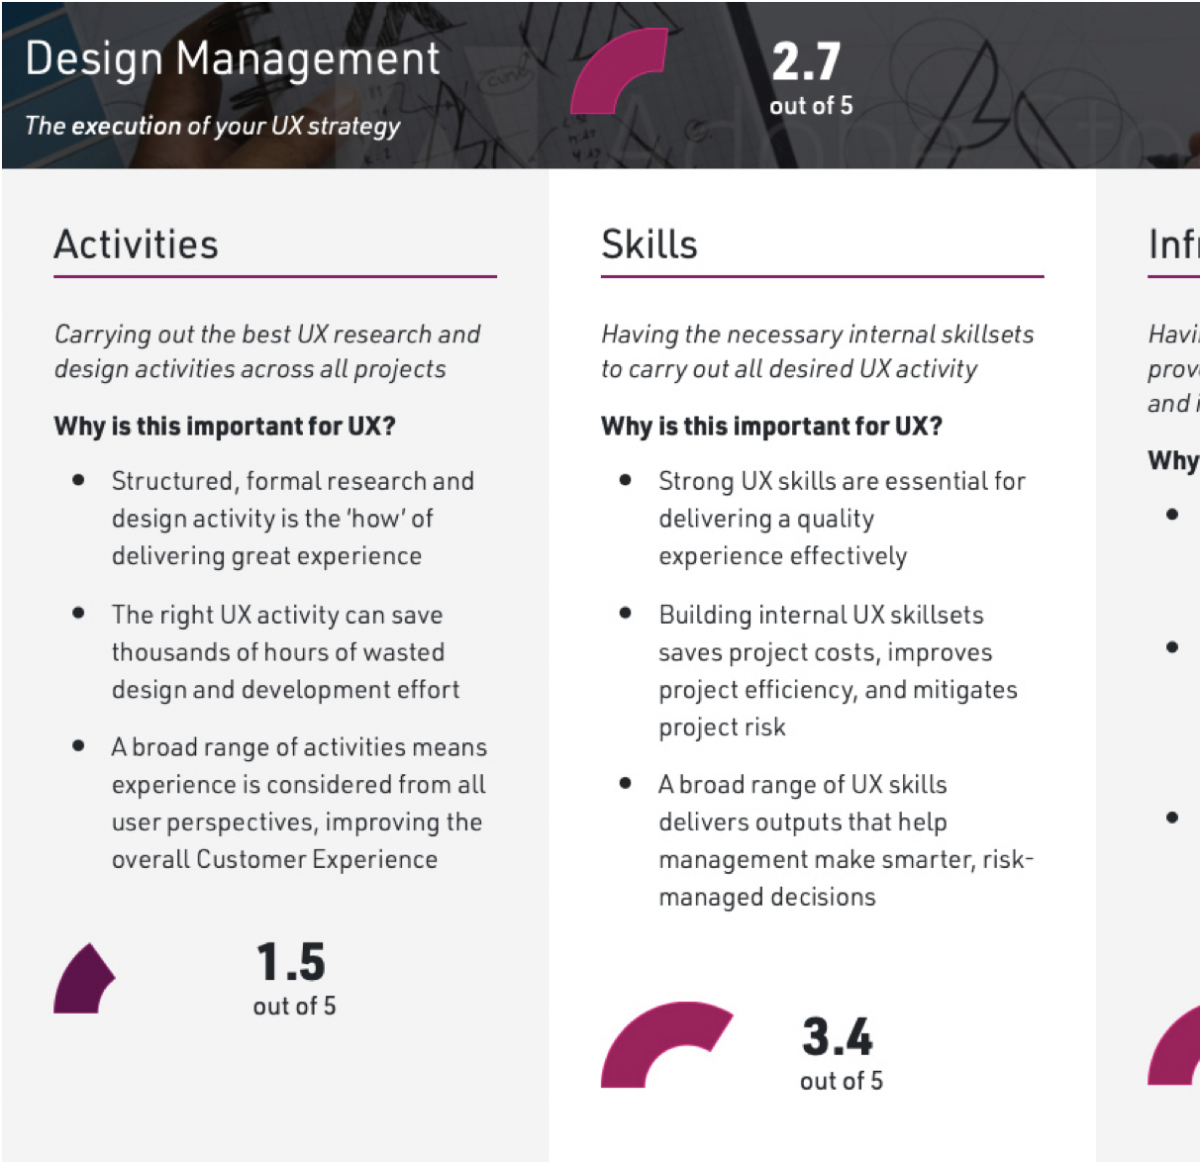 Sample of the Experience Assessment webpage output, showing a description of the Activities and Skills scales, a description of their importance, and example scores out of 5